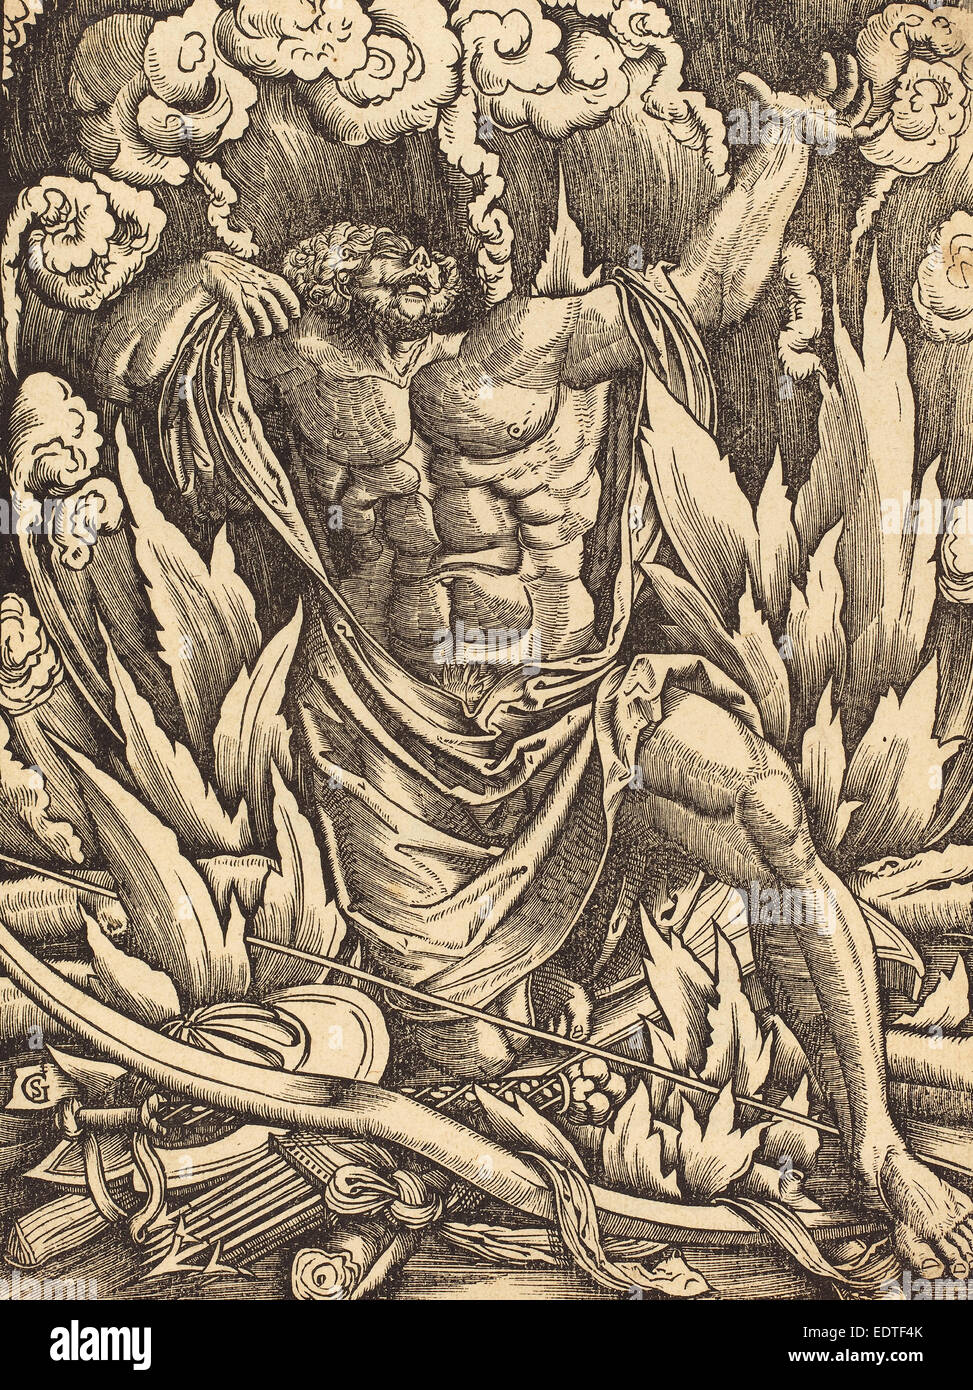 Gabriel Salmon (French, active 1504-1542), The Death of Hercules, woodcut